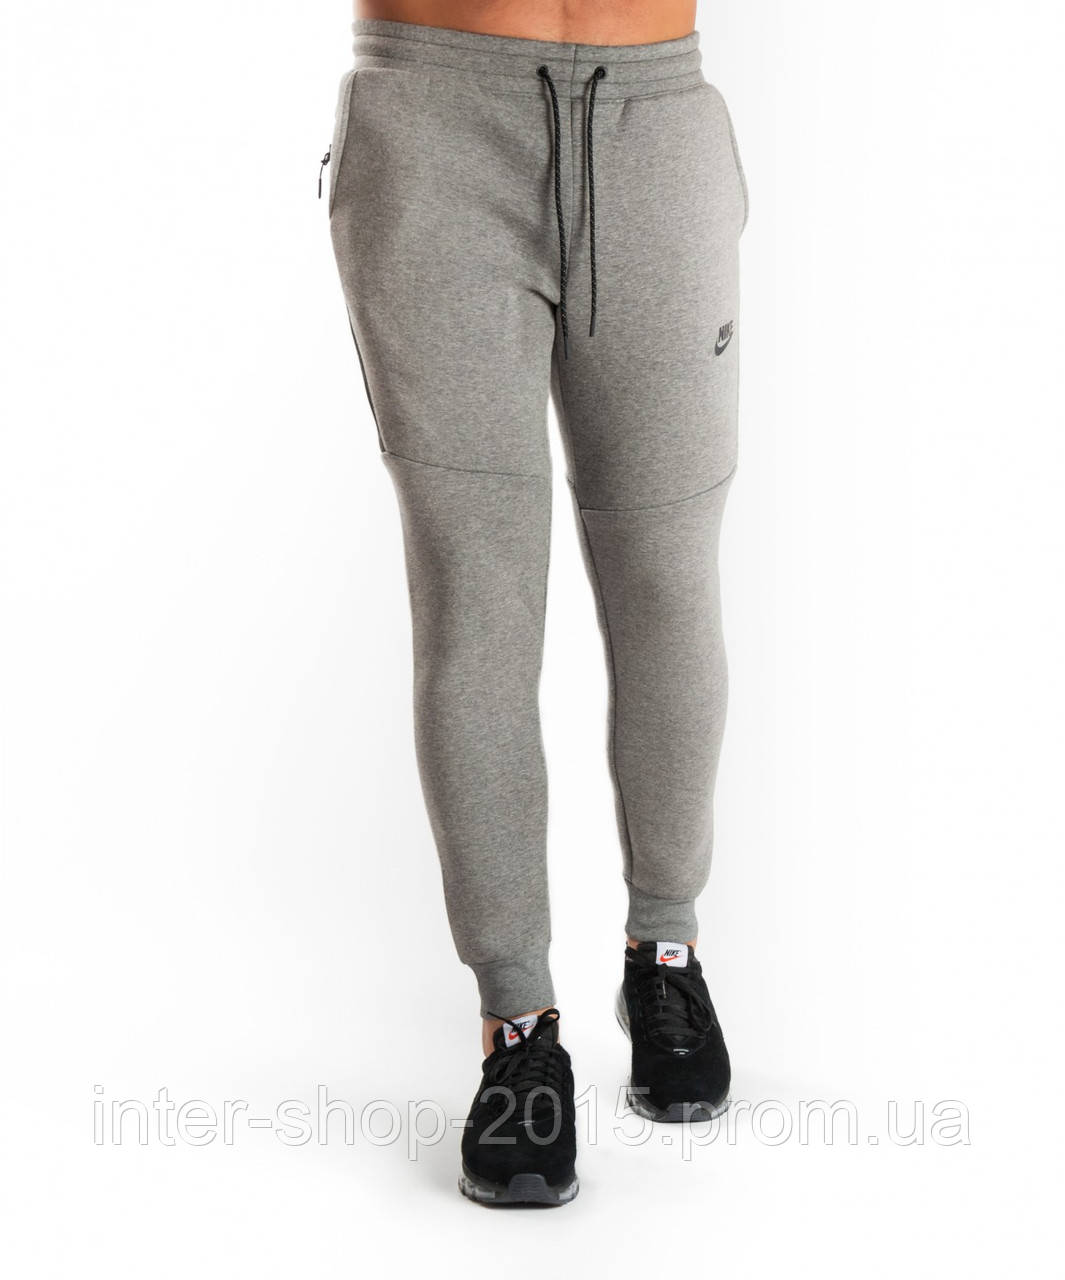 523e8723 Мужские спортивные штаны Nike Sportswear Tech Fleece Jogger 806696-091 -  INTER SHOP в Харькове